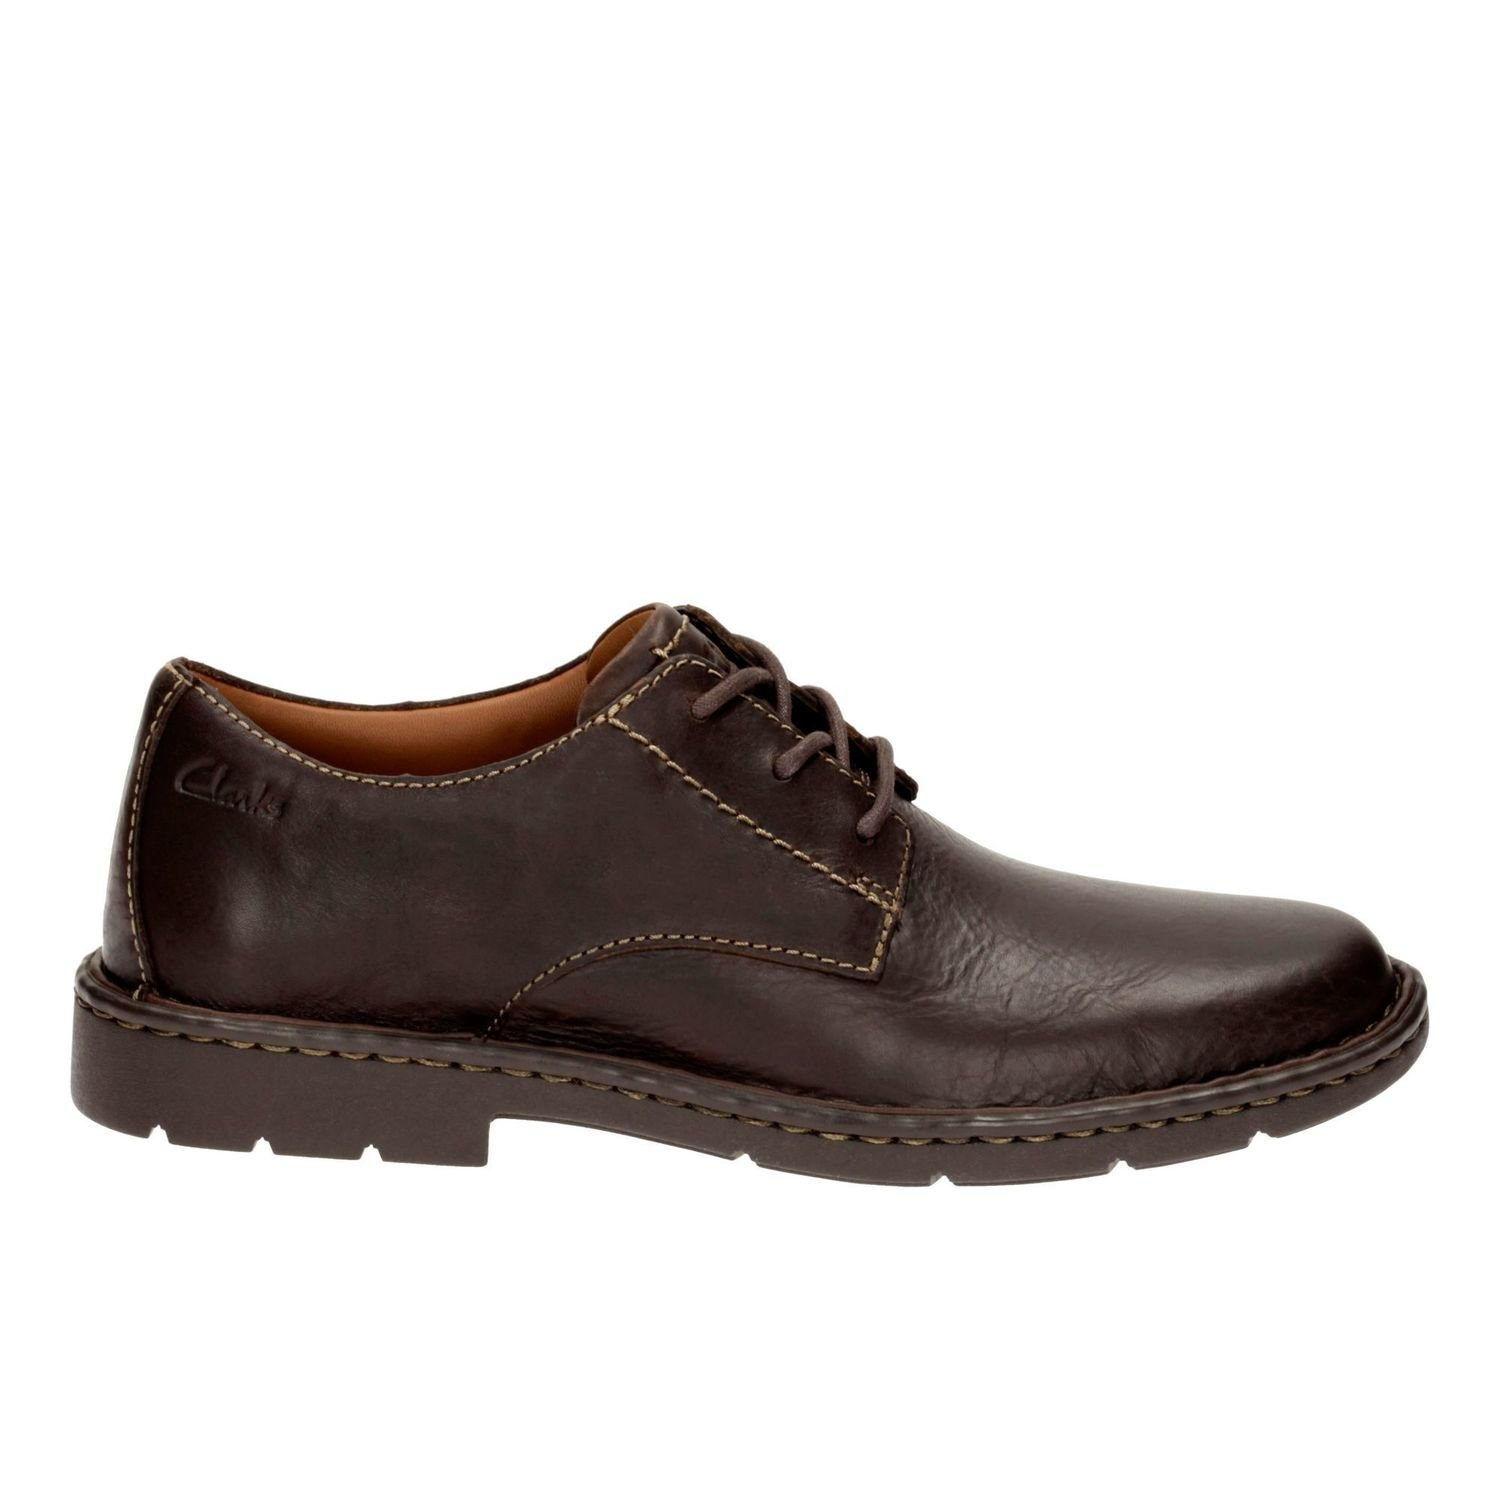 Zapatos Stratton Way Cuero Marron TN-2380277